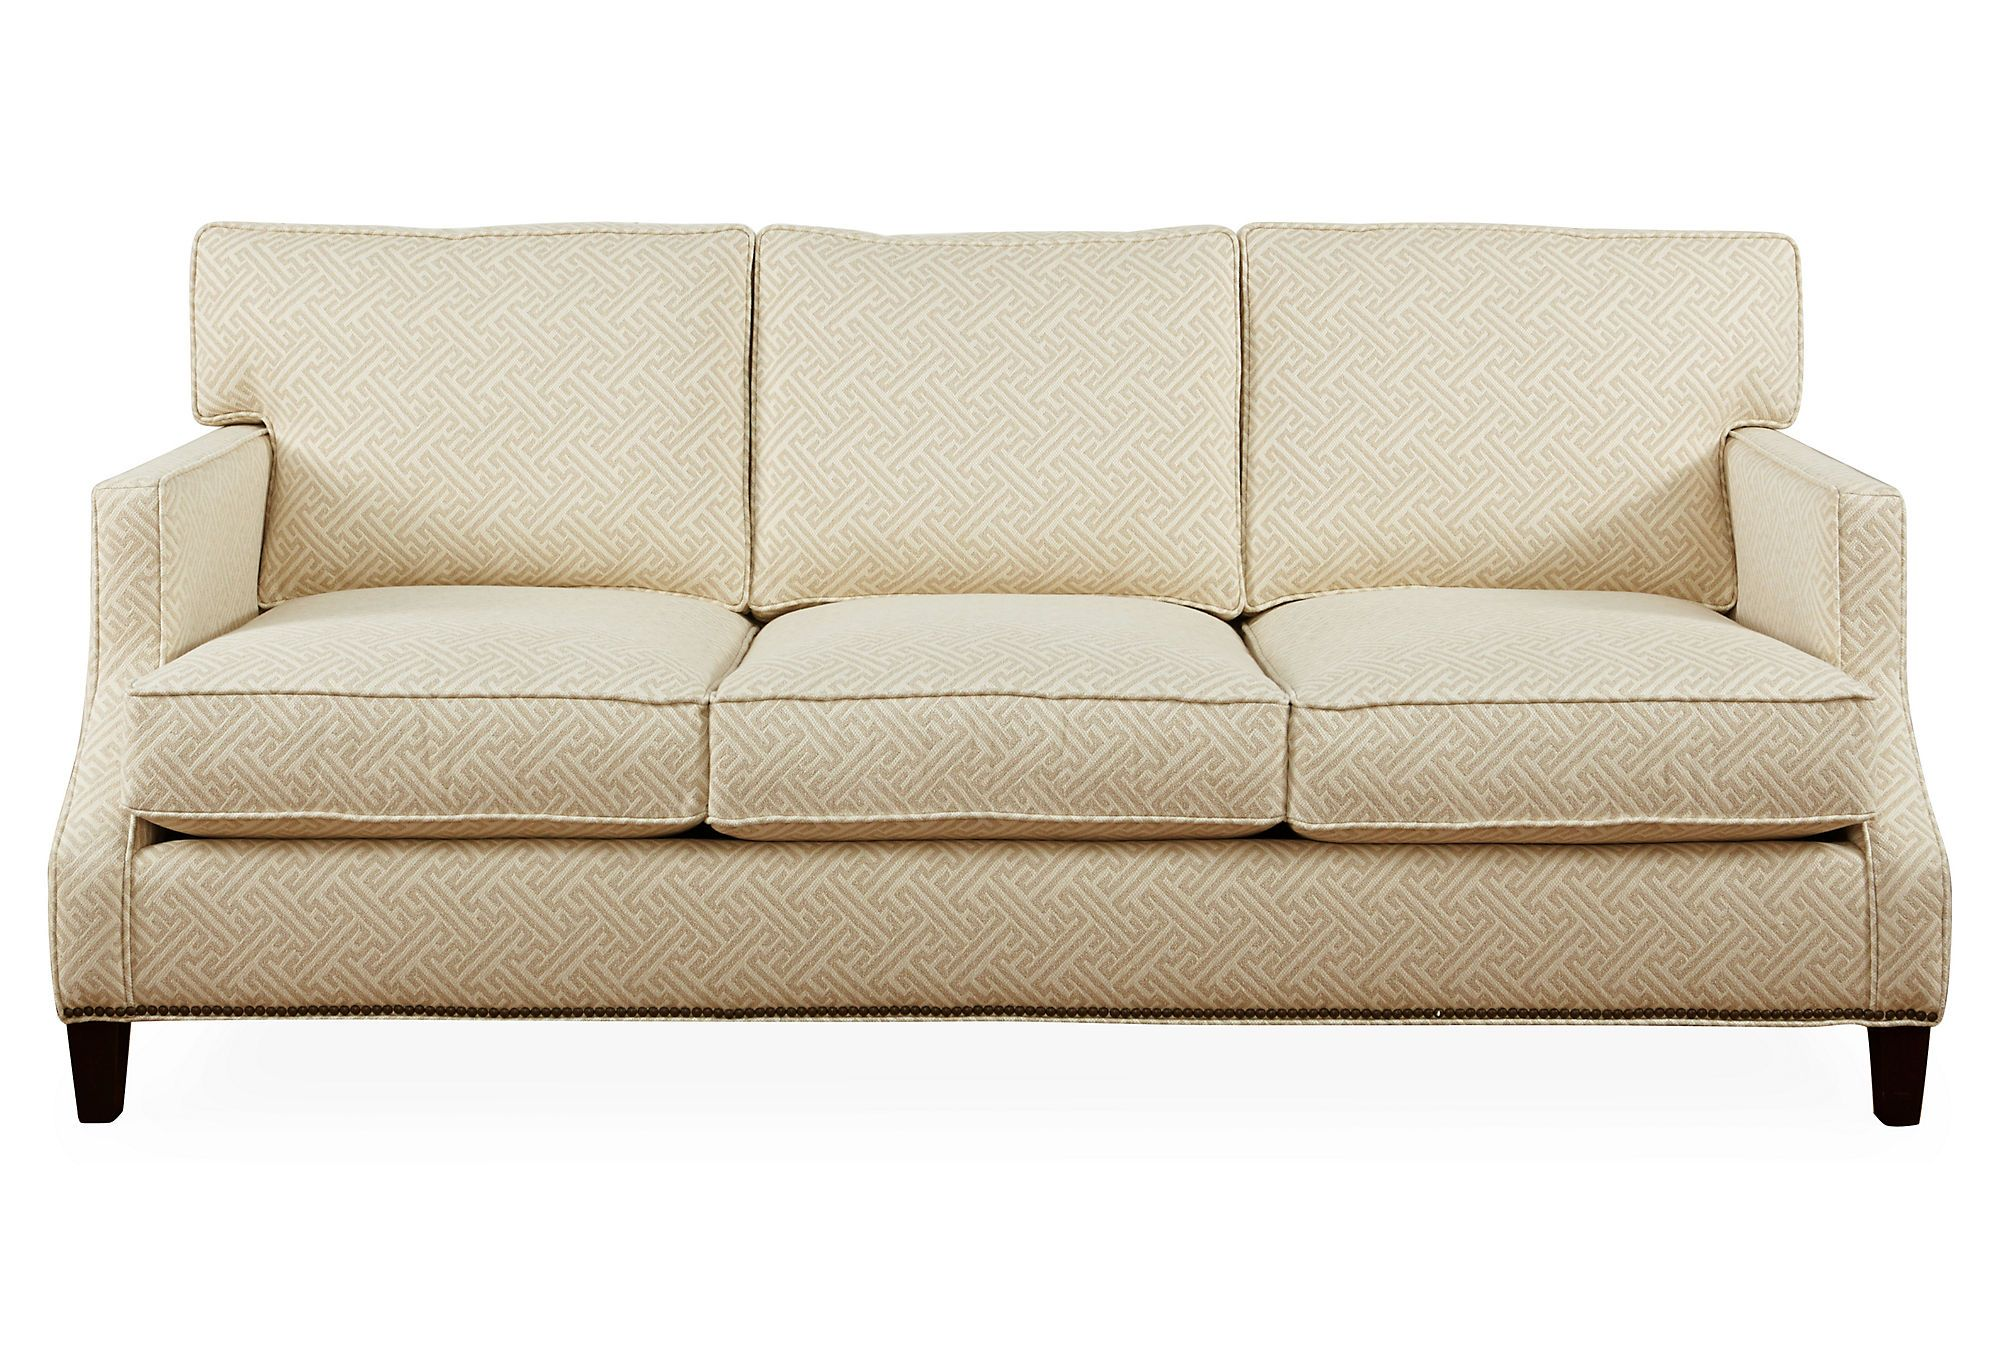 """At 82"""", this small-scaled sofa has a comfortable design, perfectly scaled for urban living. The frame is crafted using kiln-dried hardwood, which makes it exceptionally strong and sturdy. Each is..."""